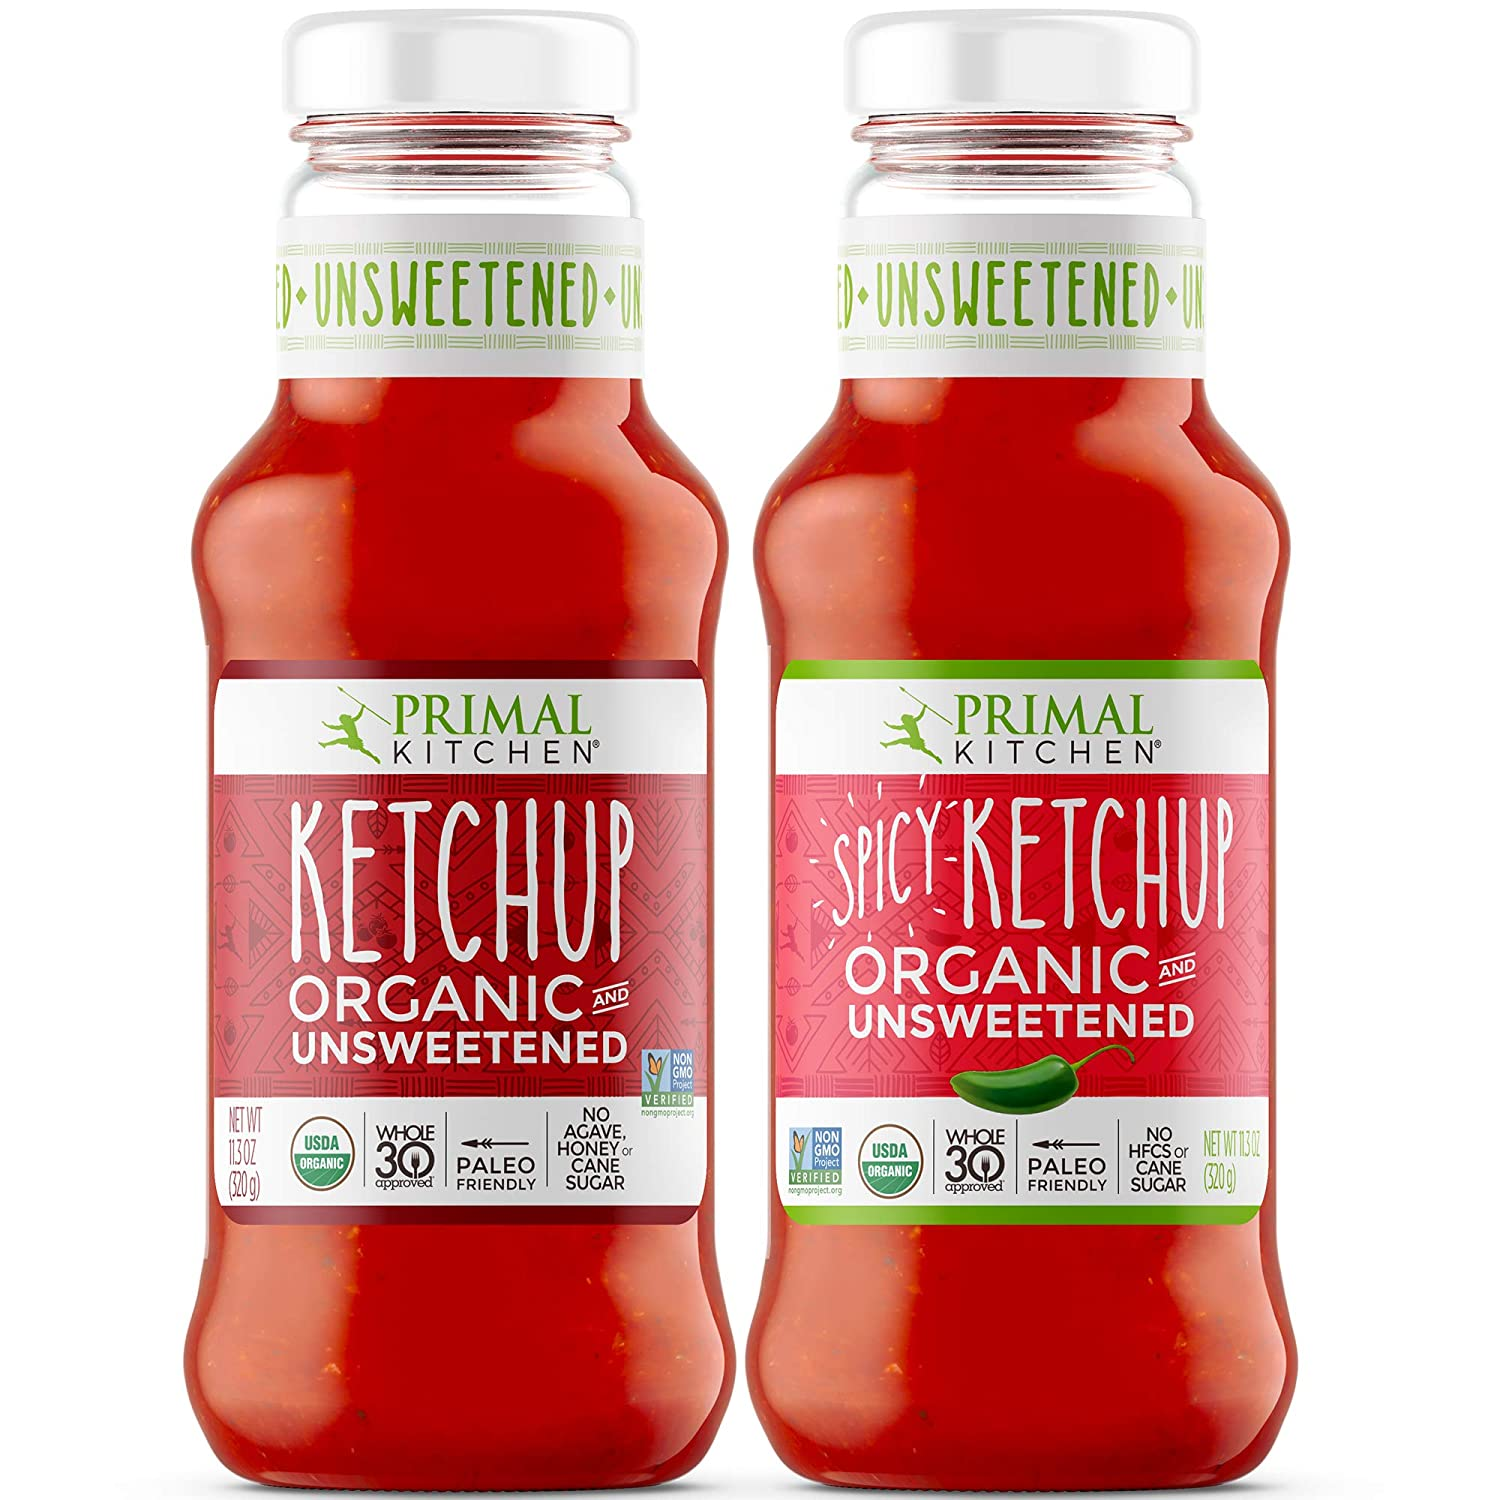 Primal Kitchen Organic and Unsweetened Ketchup Variety Two Pack, Whole 30 Approved, Includes 1 Original & 1 Spicy Ketchup